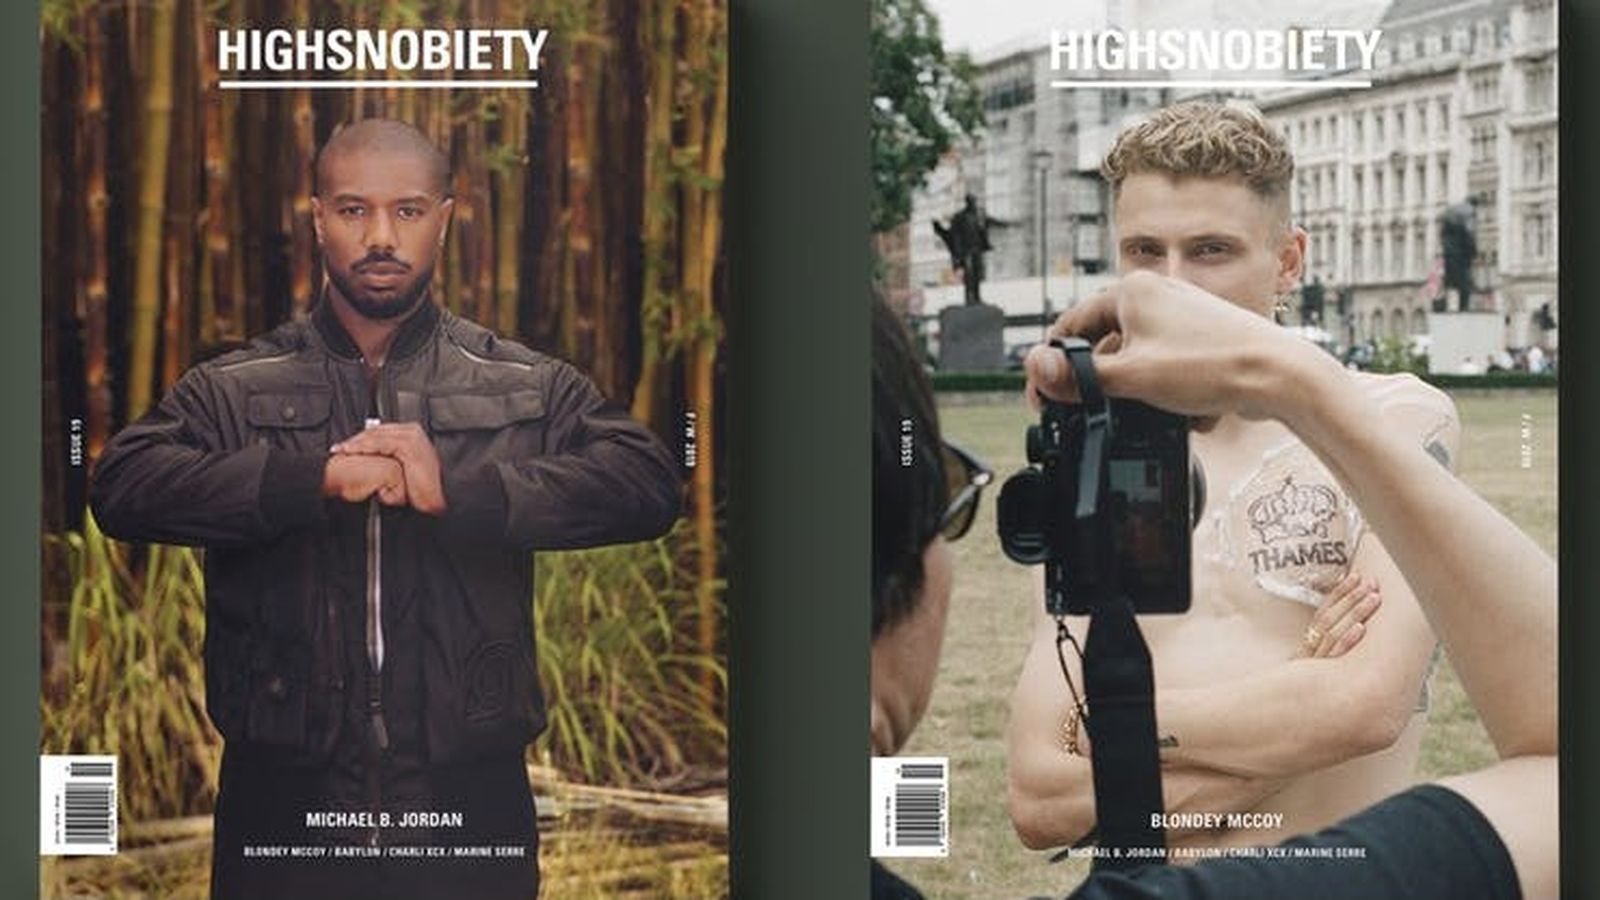 HIGHSNOBIETY MAGAZINE - ISSUE 19 - campaign